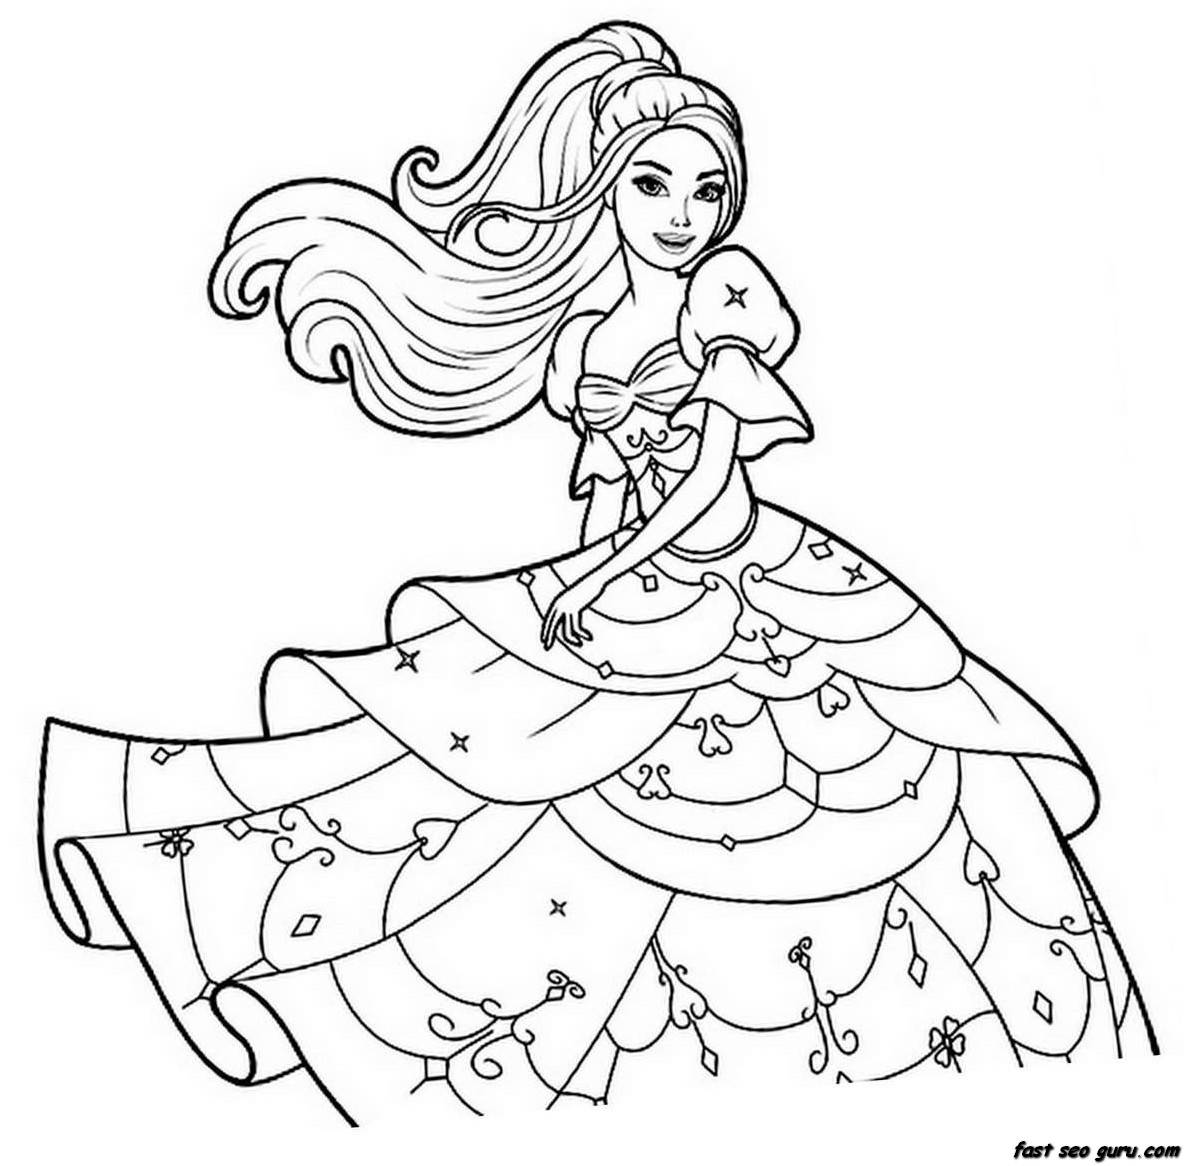 1198x1166 Cute Girl Coloring Pages To Download And Print For Free